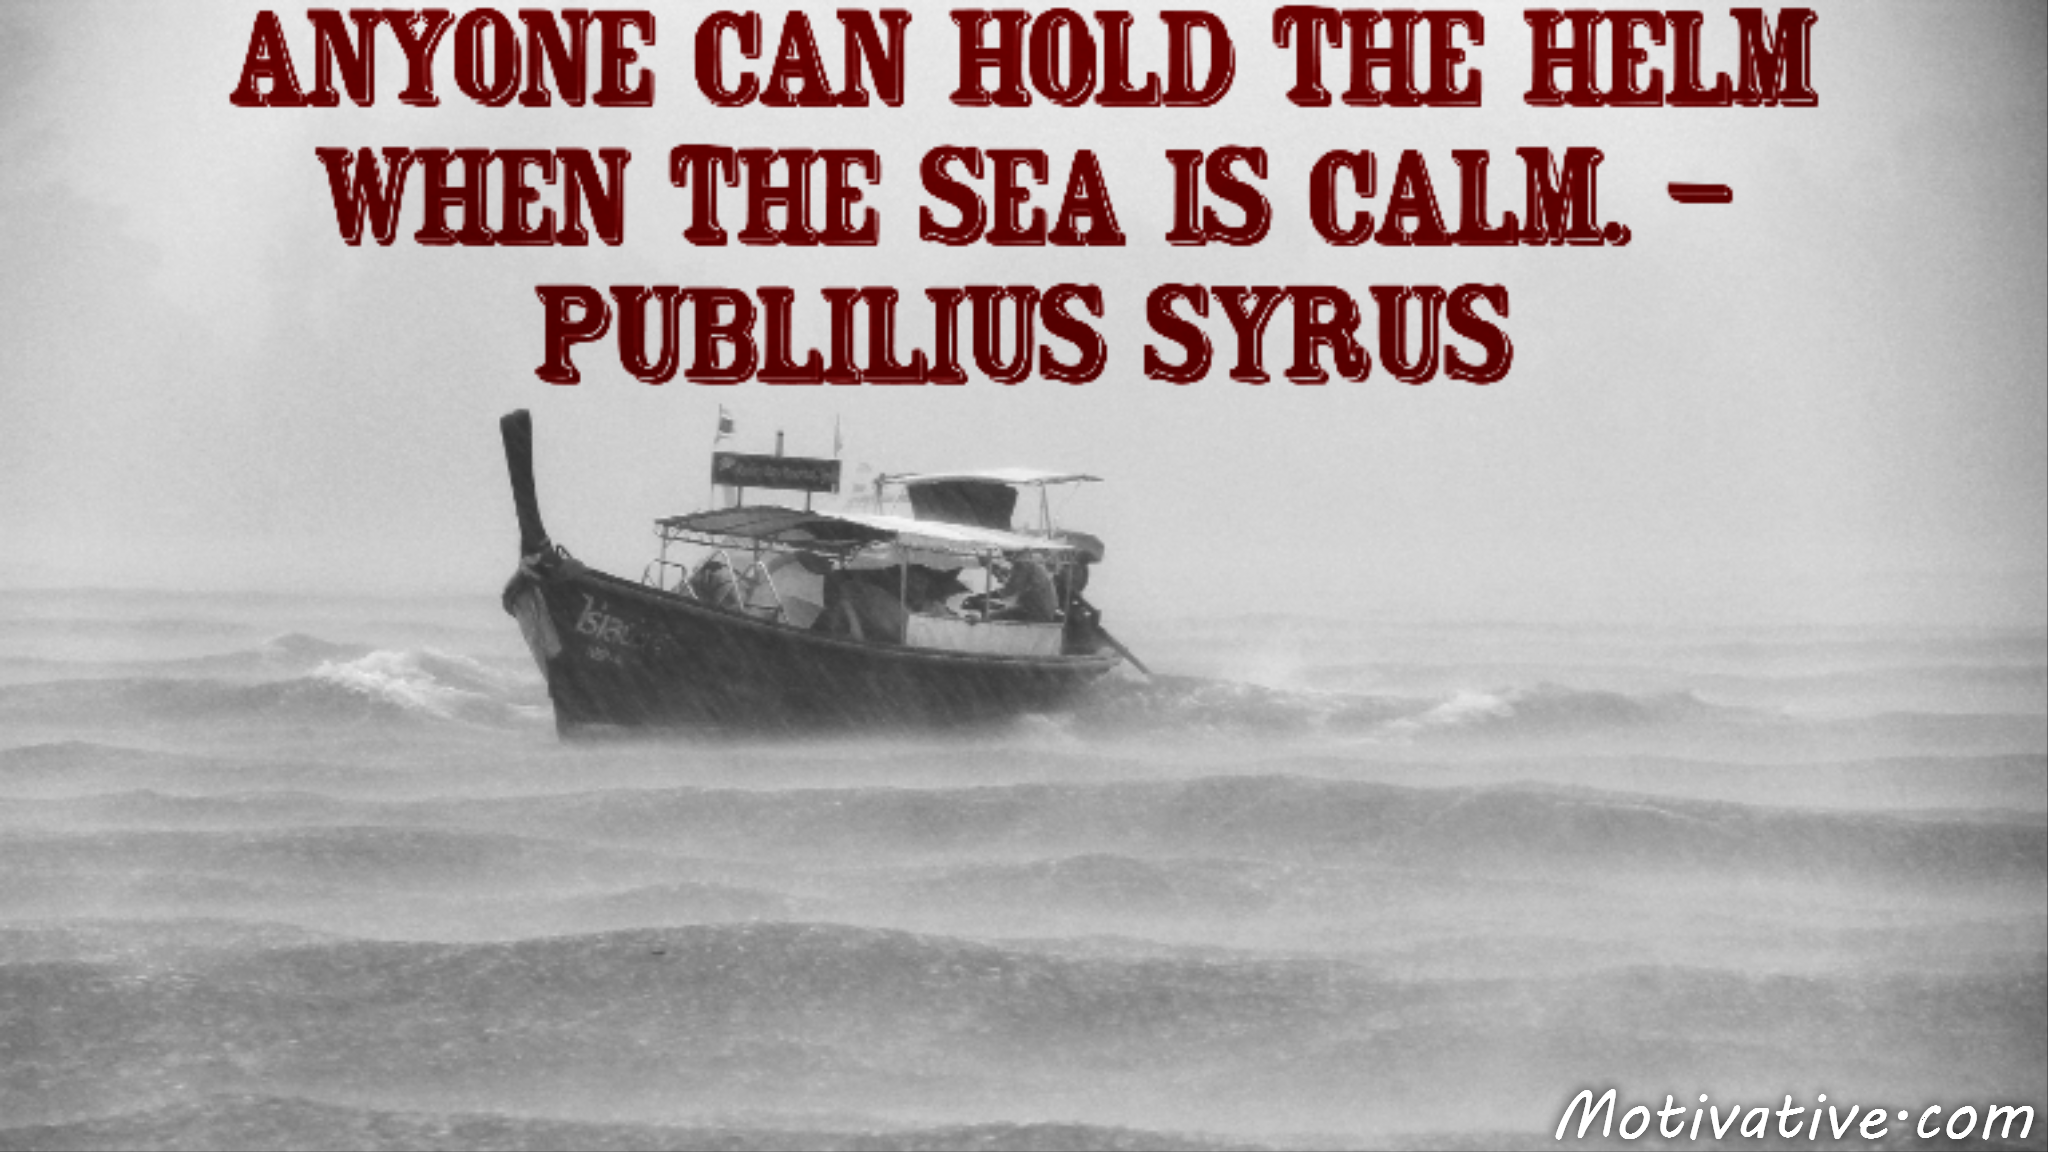 Anyone can hold the helm when the sea is calm. – Publilius Syrus